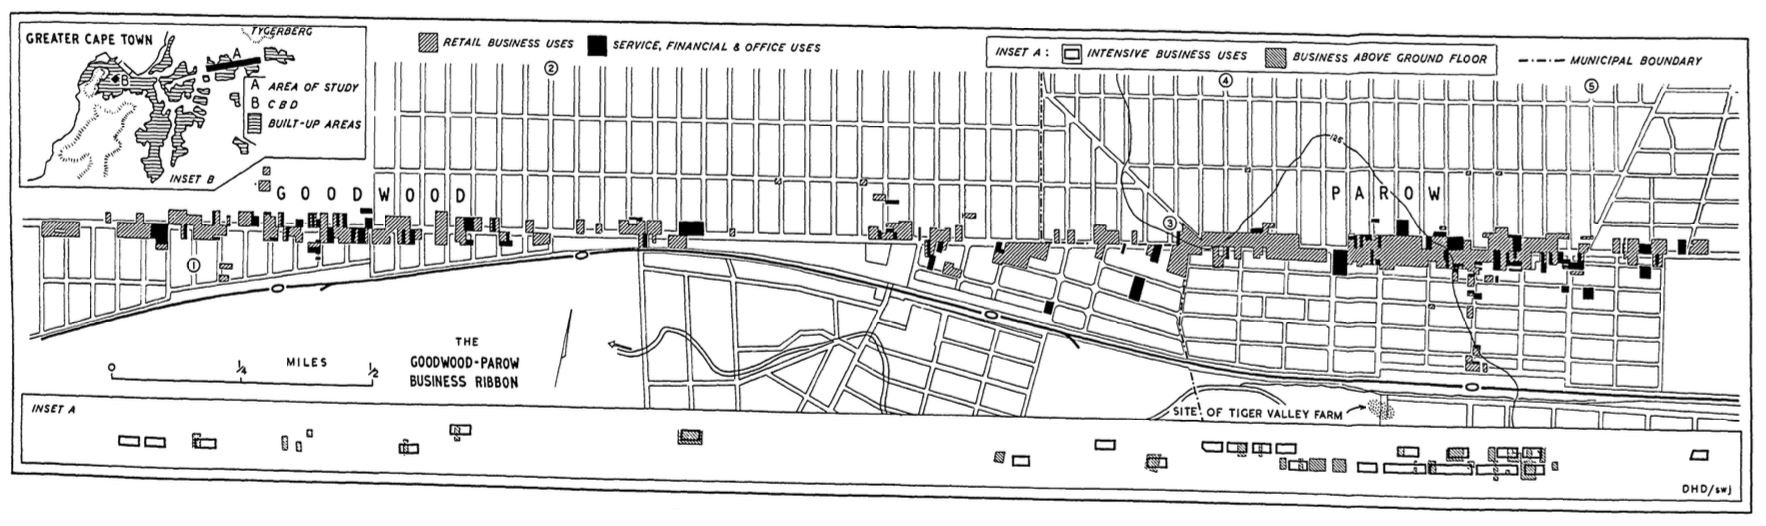 Davies' land use study of 1960 indicated potentials of developing a higher density 'business ribbon'